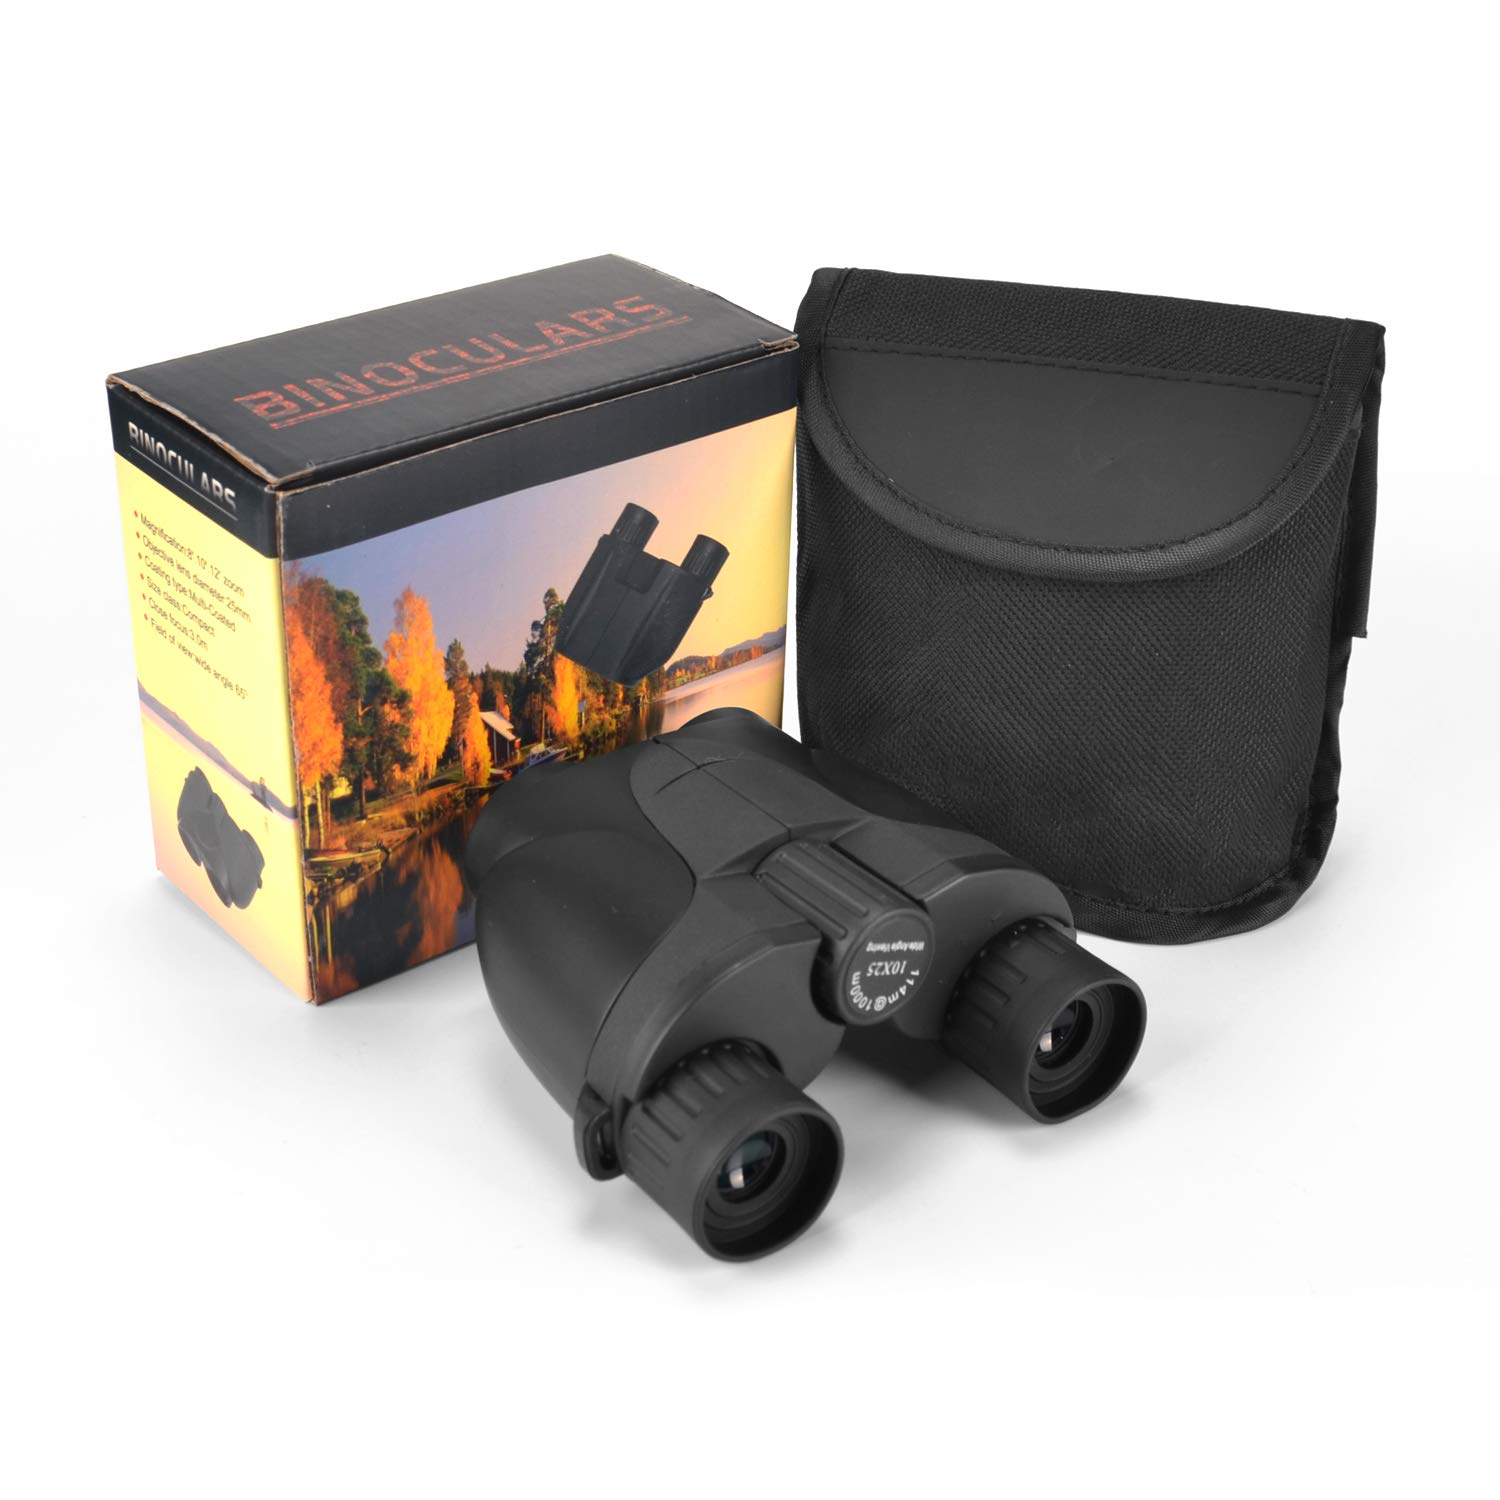 10X25 Mini Binoculars, Powerful Folding Compact Binoculars Telescope for Adults and Kids with Large Eyepiece,Fully Multi-Coated Green Lens,Waterproof Suit for Bird Watching Football Safari Sightseeing